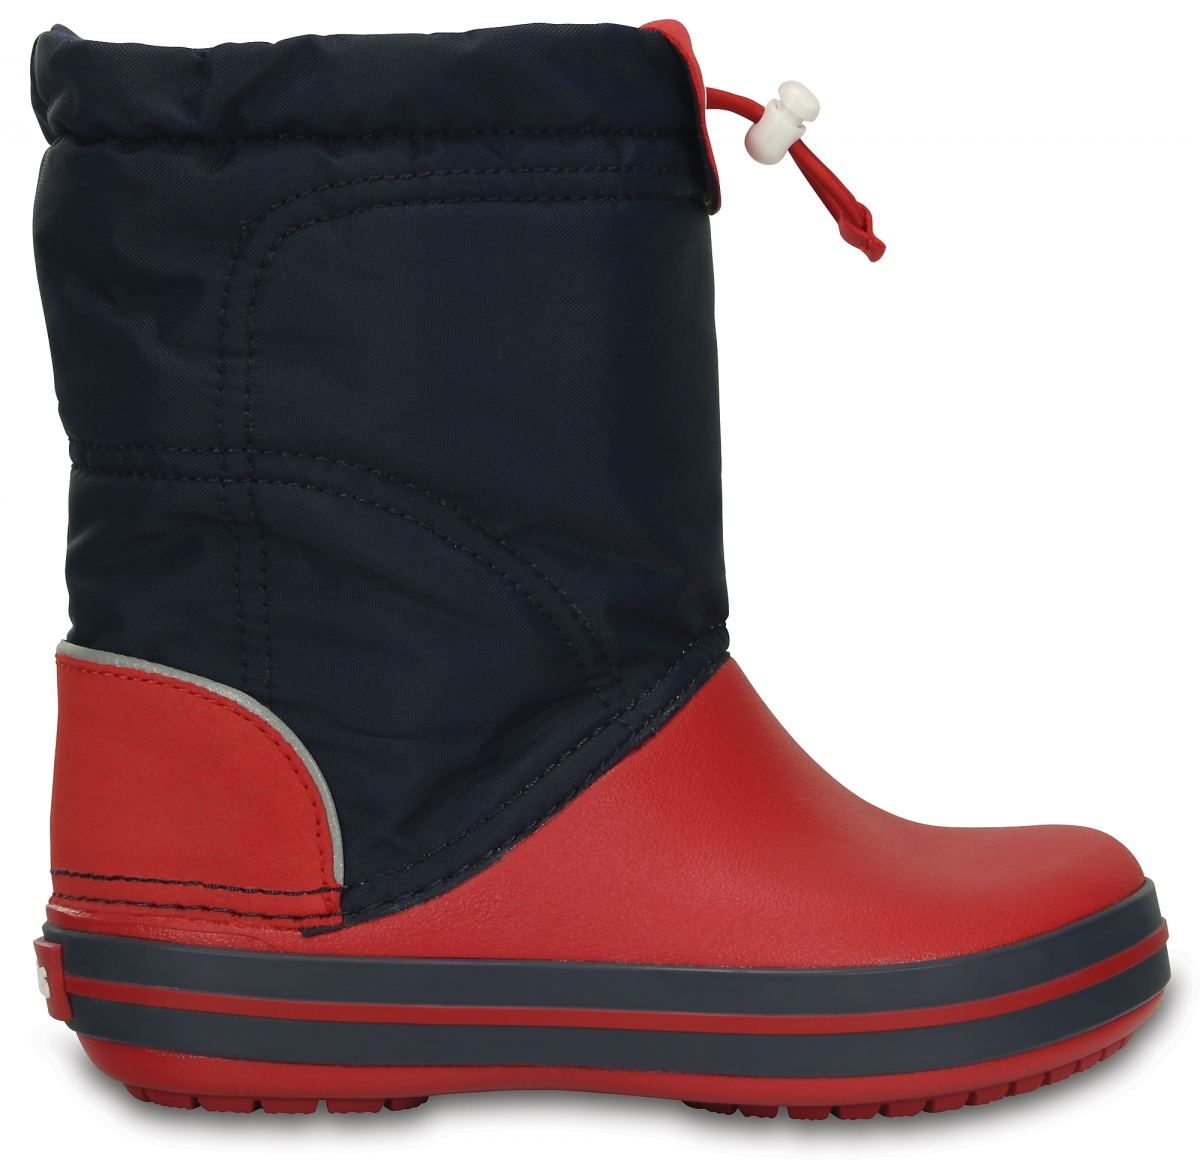 Crocs Crocband LodgePoint Boot Kids Navy/Red, J2 (33-34)